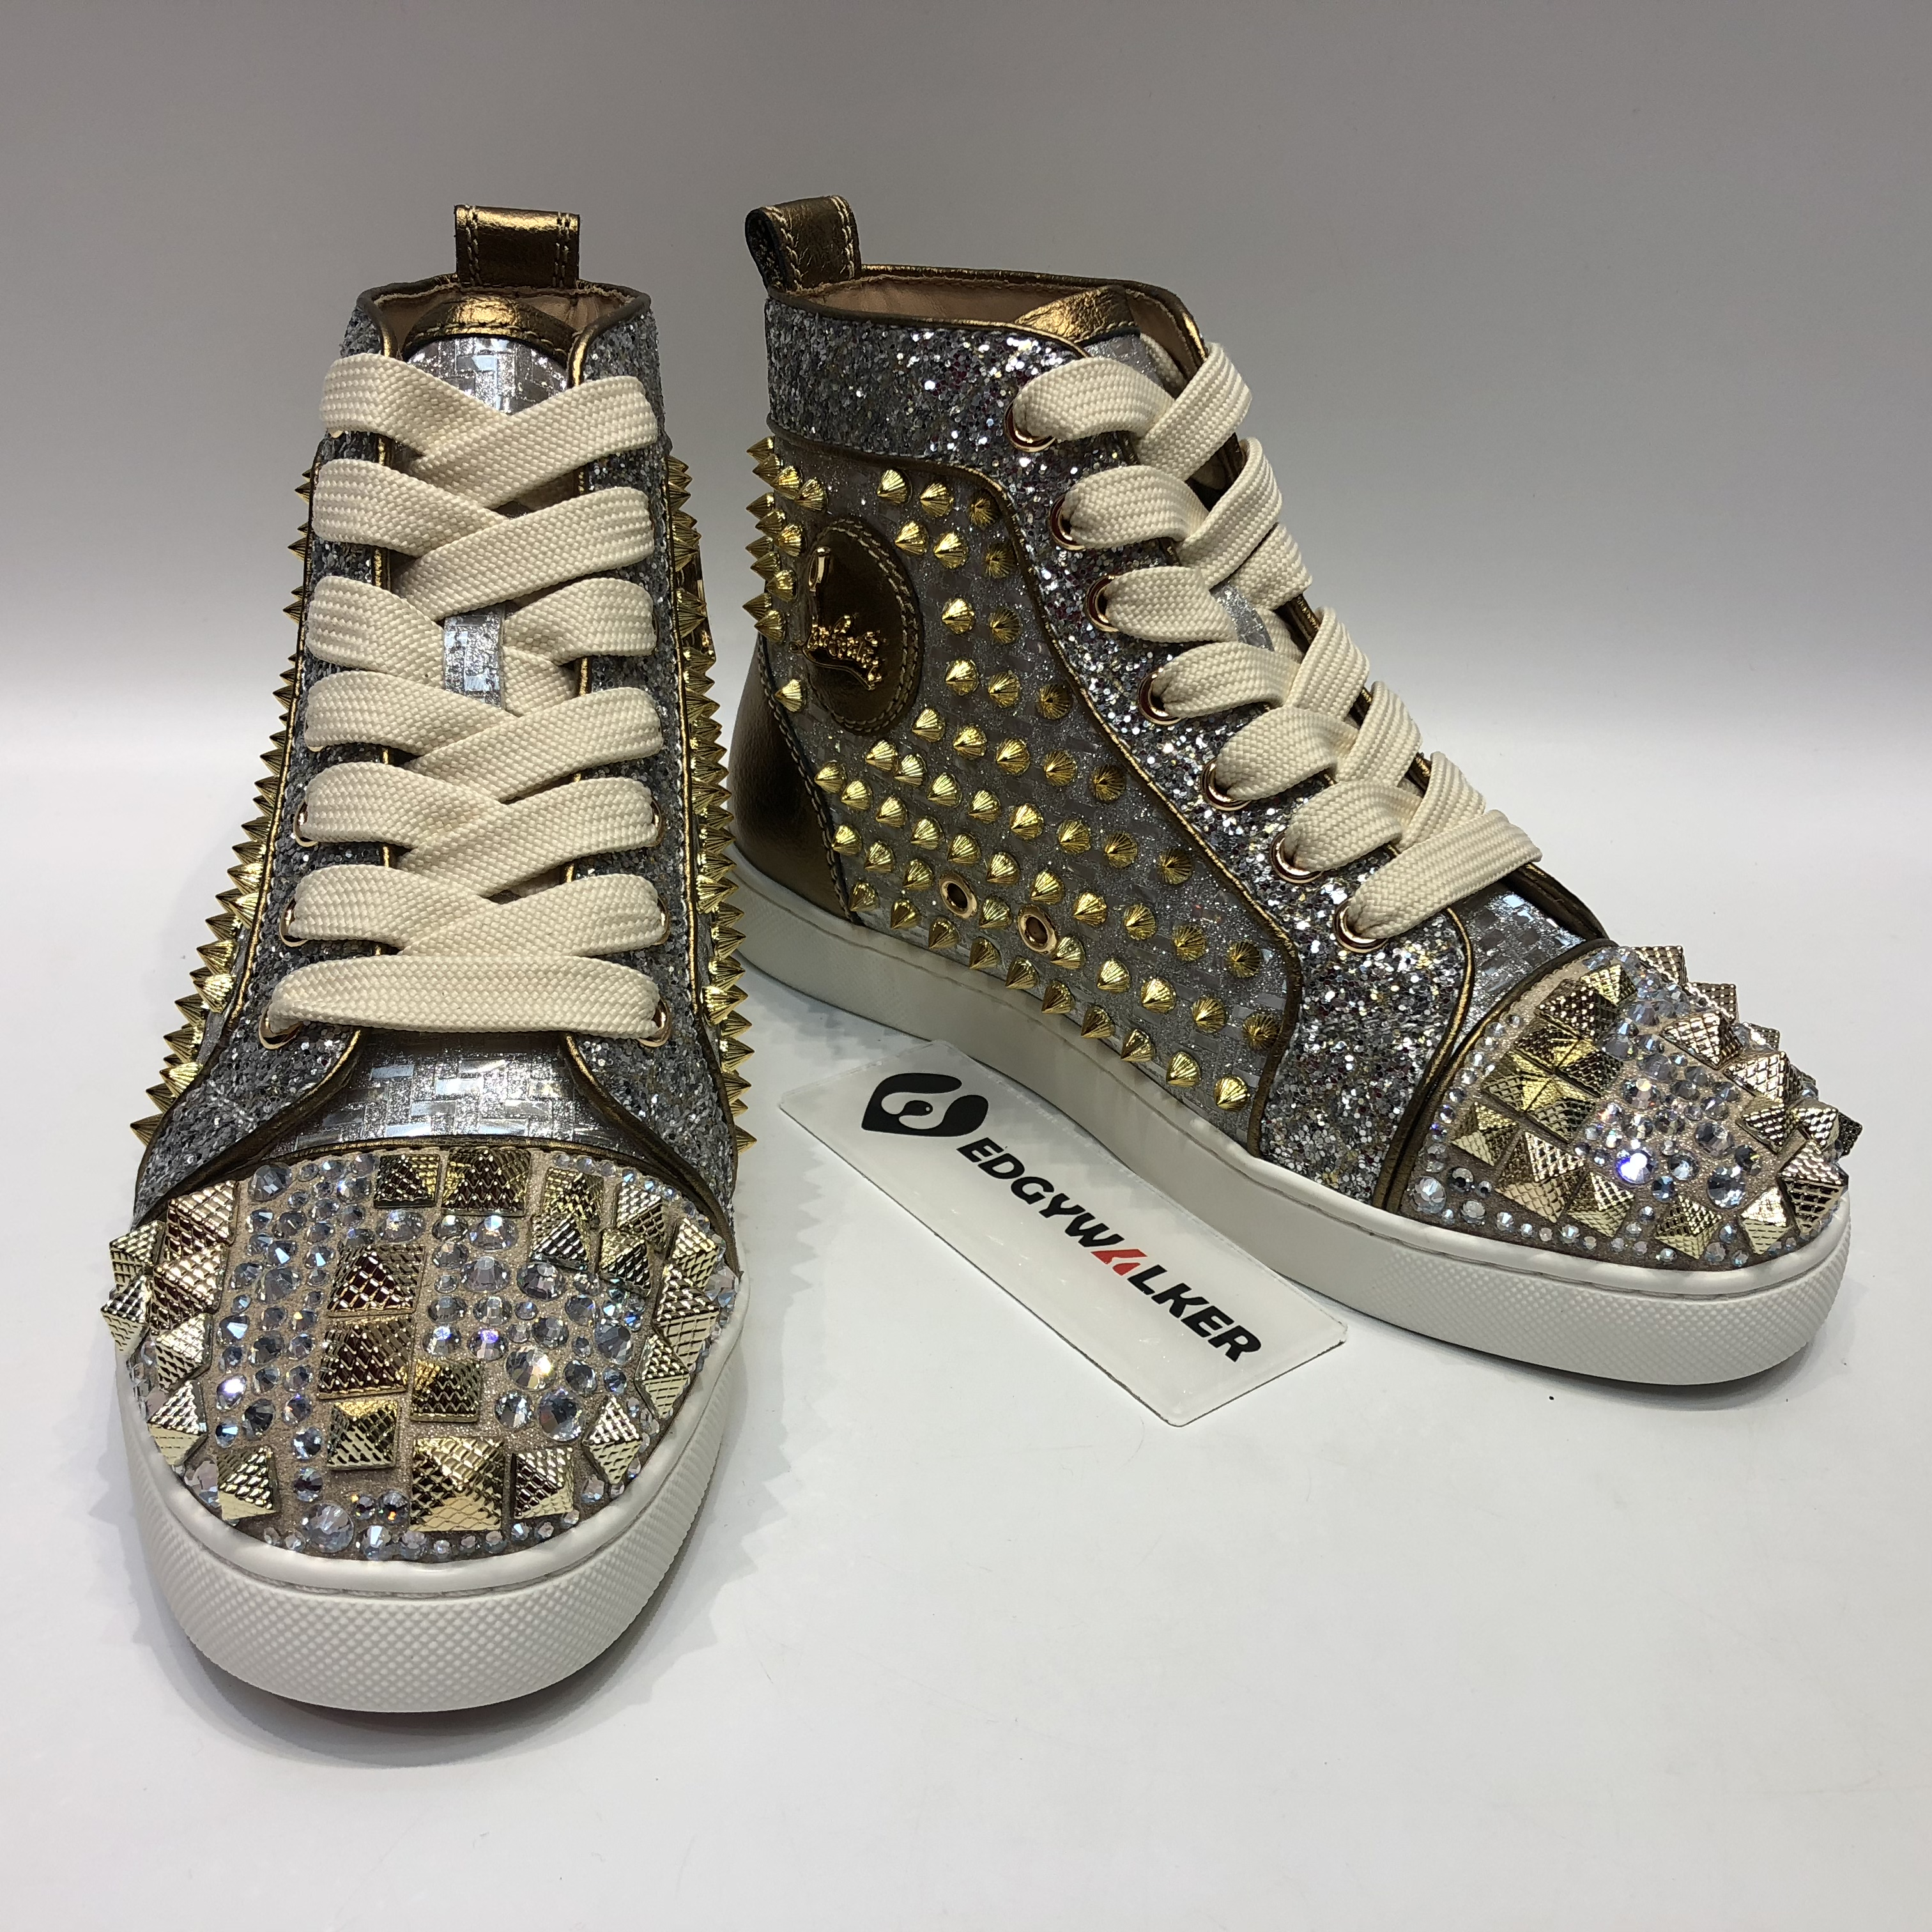 365c95b09d7 CLSKH111 Louboutin Louis Spikes Strass Mixkeoshell silver Leather High-top Sneaker  Item NO  CLSKH111